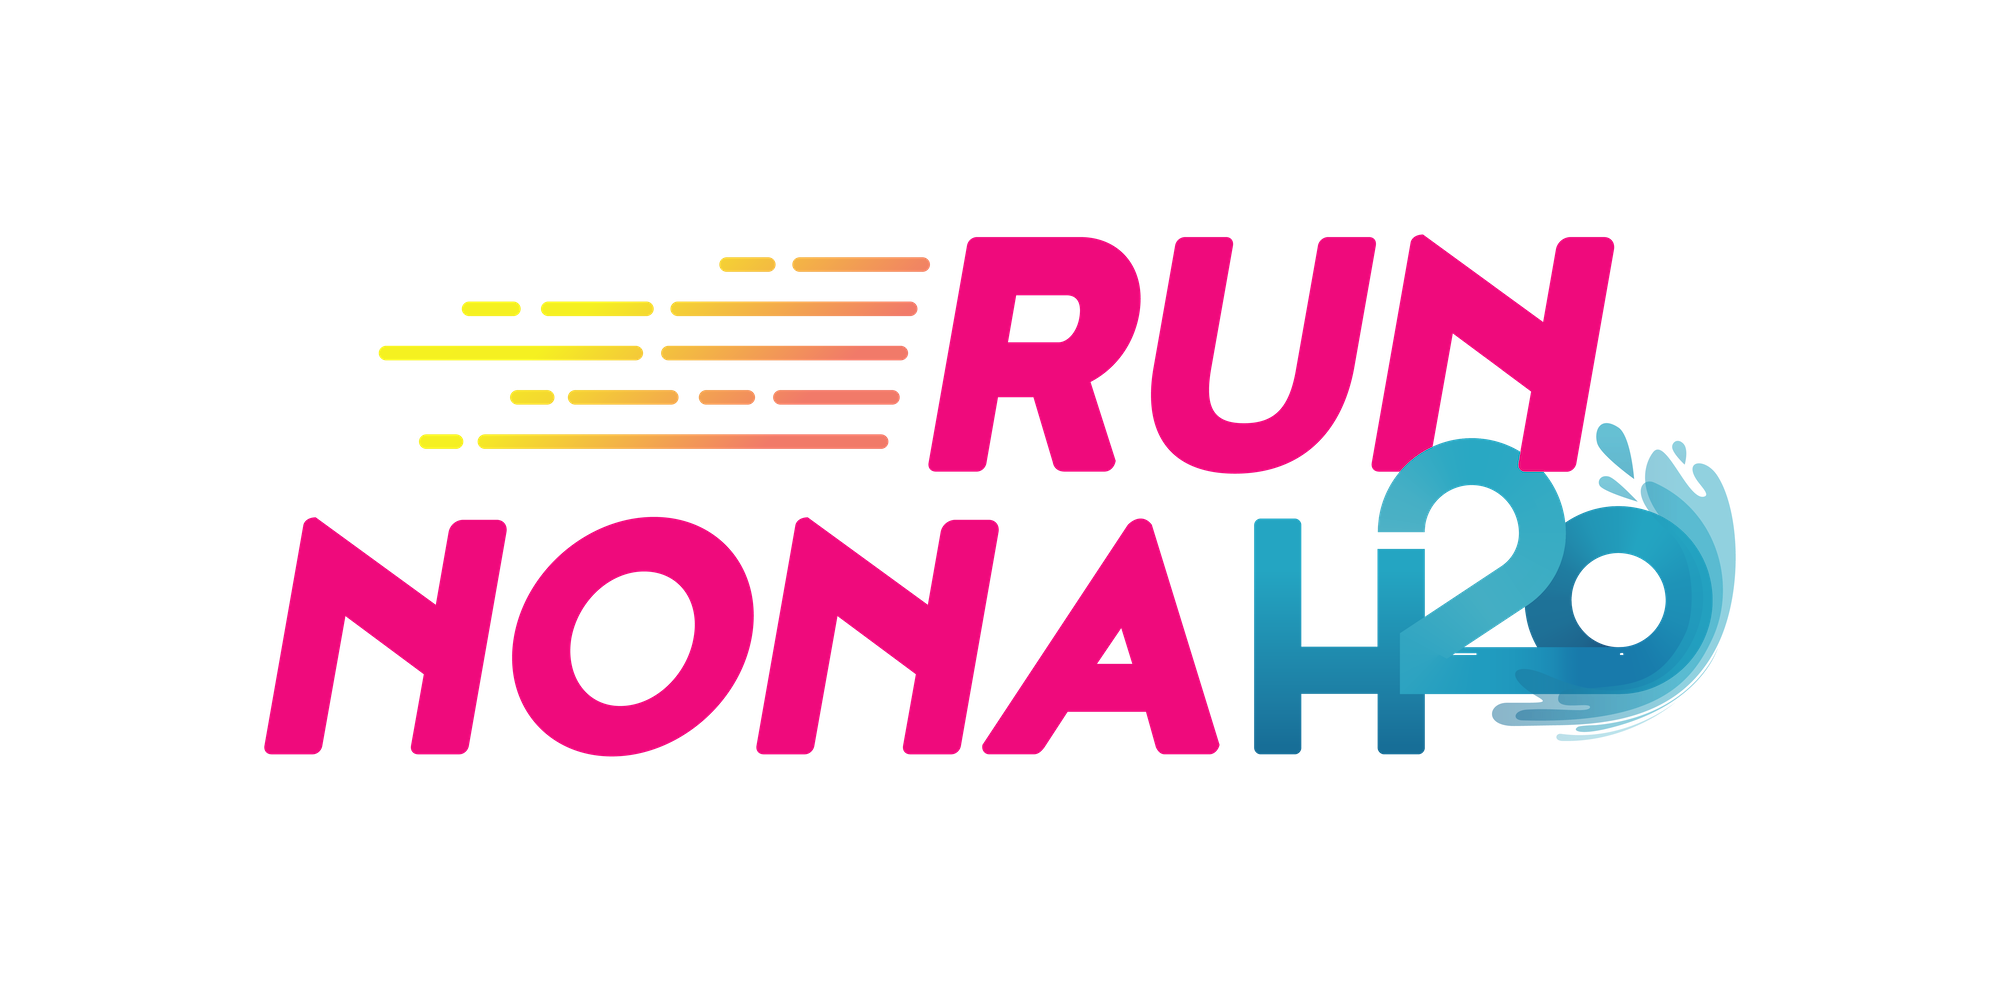 Run Nona 5k Virtual